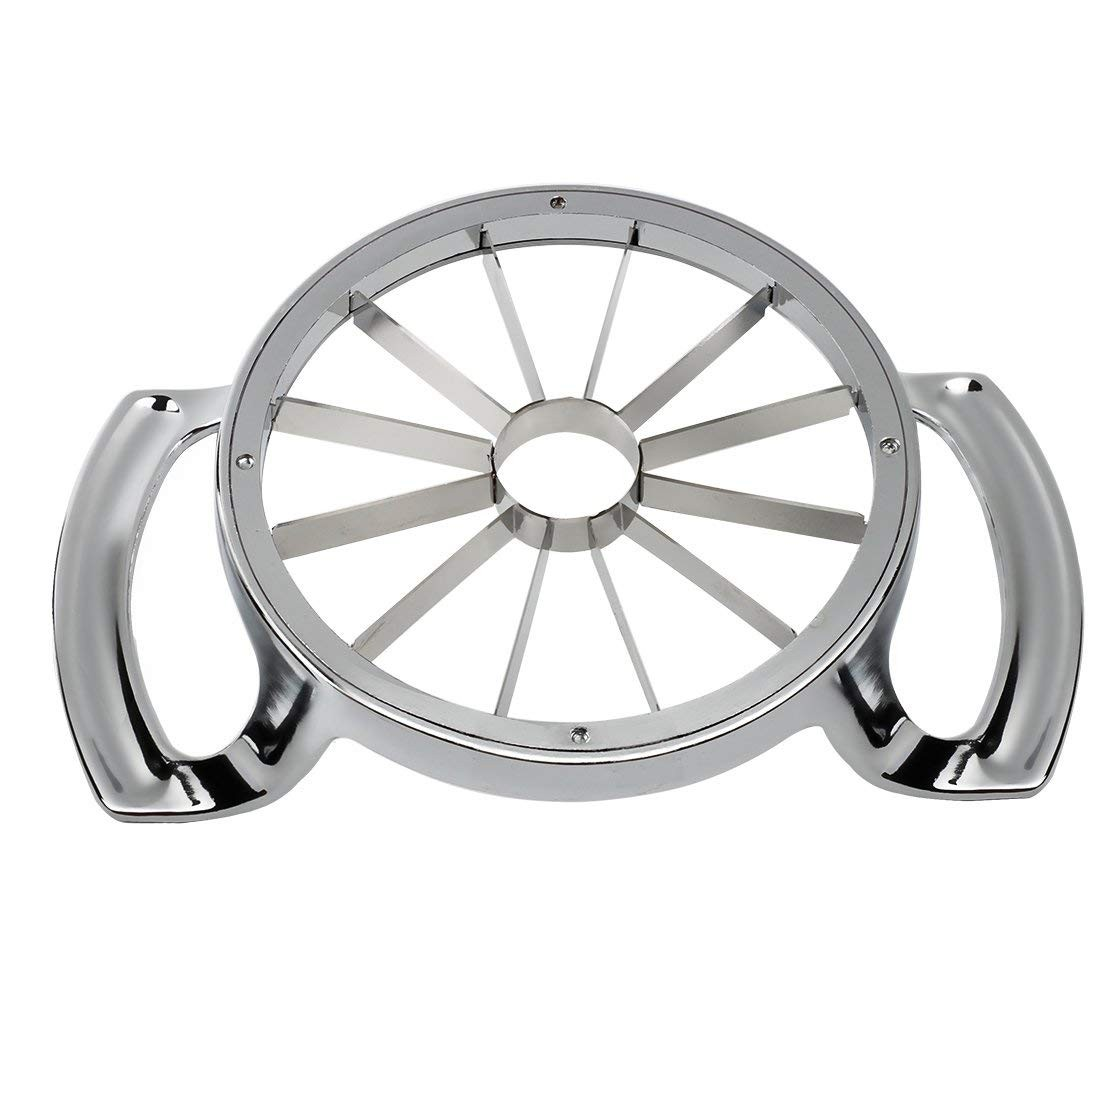 Stainless Steel Apple Slicer Cutter, Fruits Corer Pitter for Cut and Core Apples or Pears Into 12 Even Wedges